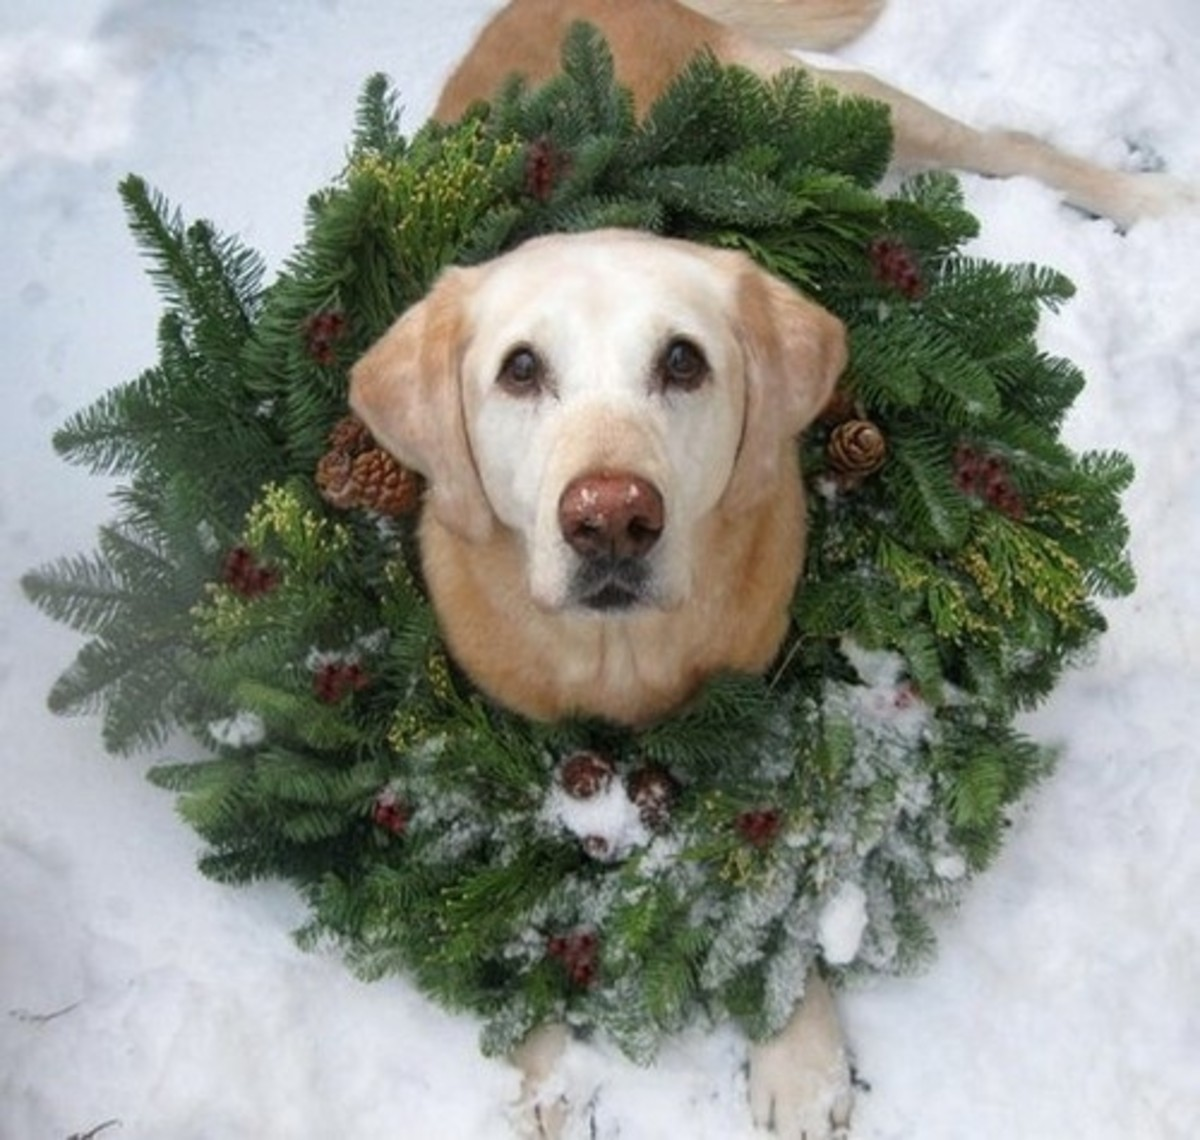 Those who consider their pets to be a part of their family can include them on their holiday cards too.